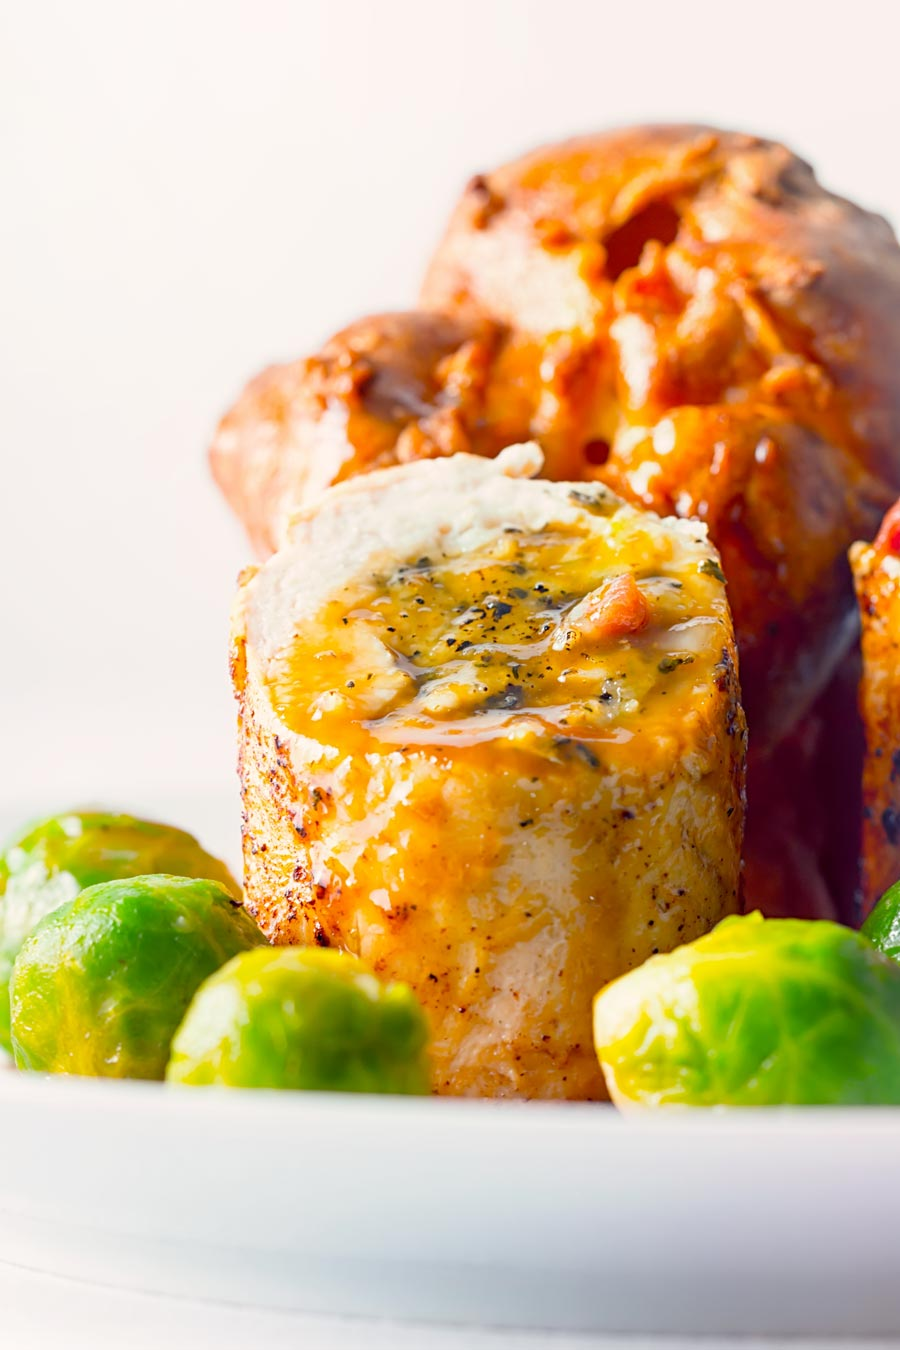 This Poached Sage and Onion Stuffed Chicken Breast recipe and is a lightened up and hurried up take on a traditional British chicken dinner.